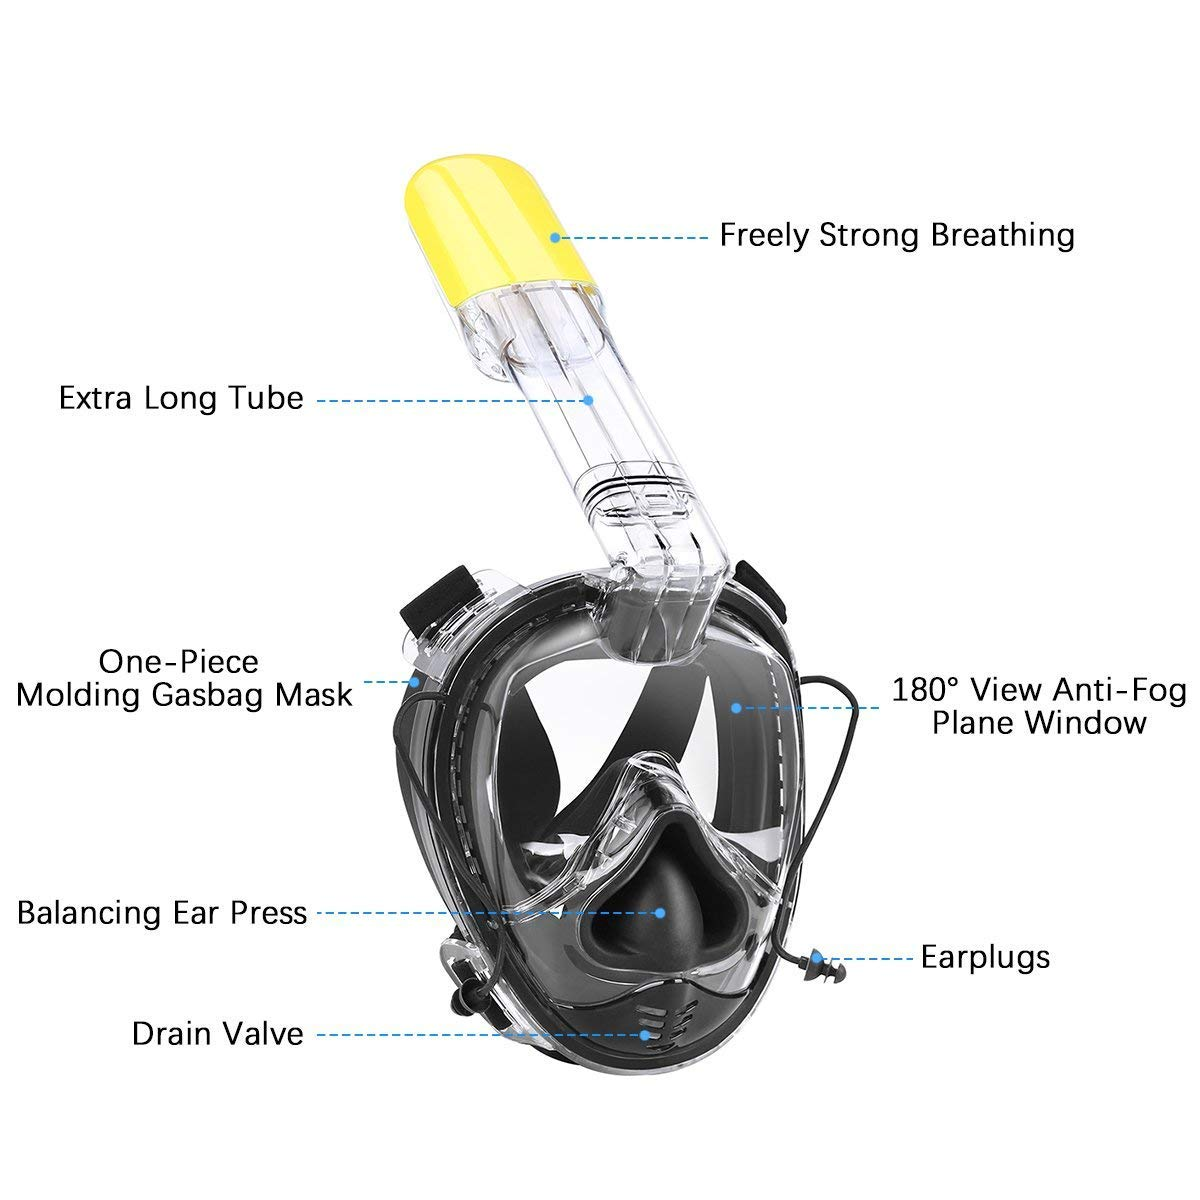 INKERSCOOP One Size Snorkel Mask Ear Pressure Release 180° Panoramic View [2018 Upgrade] Anti-Fog Full Face Snorkeling Mask Earwith Earplug, Easy Breath and No Leakage for Adult and Children